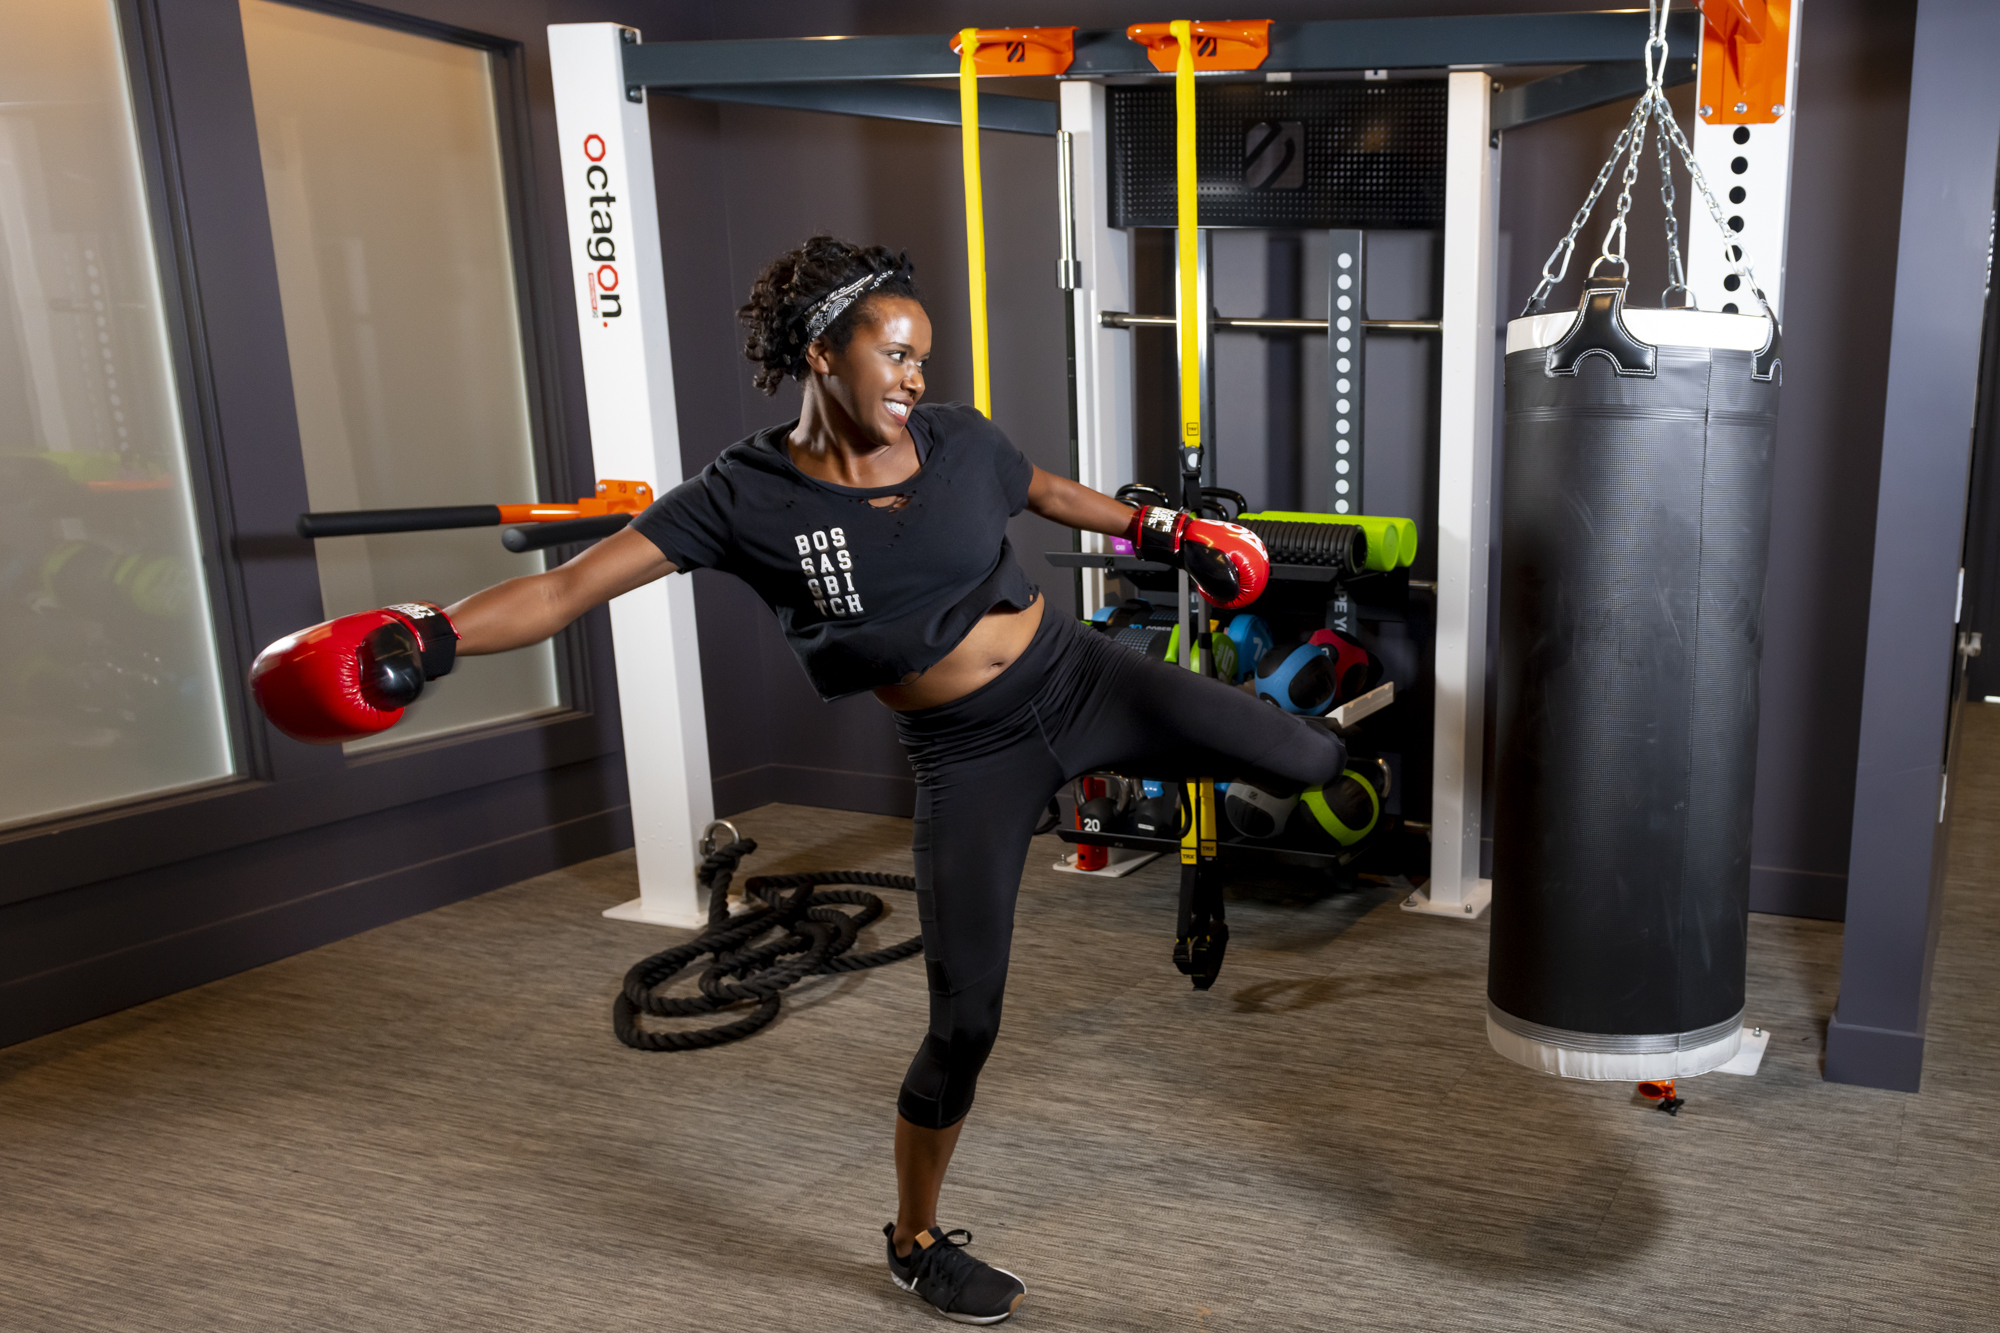 girl kickboxing at evolve fitness center new workout